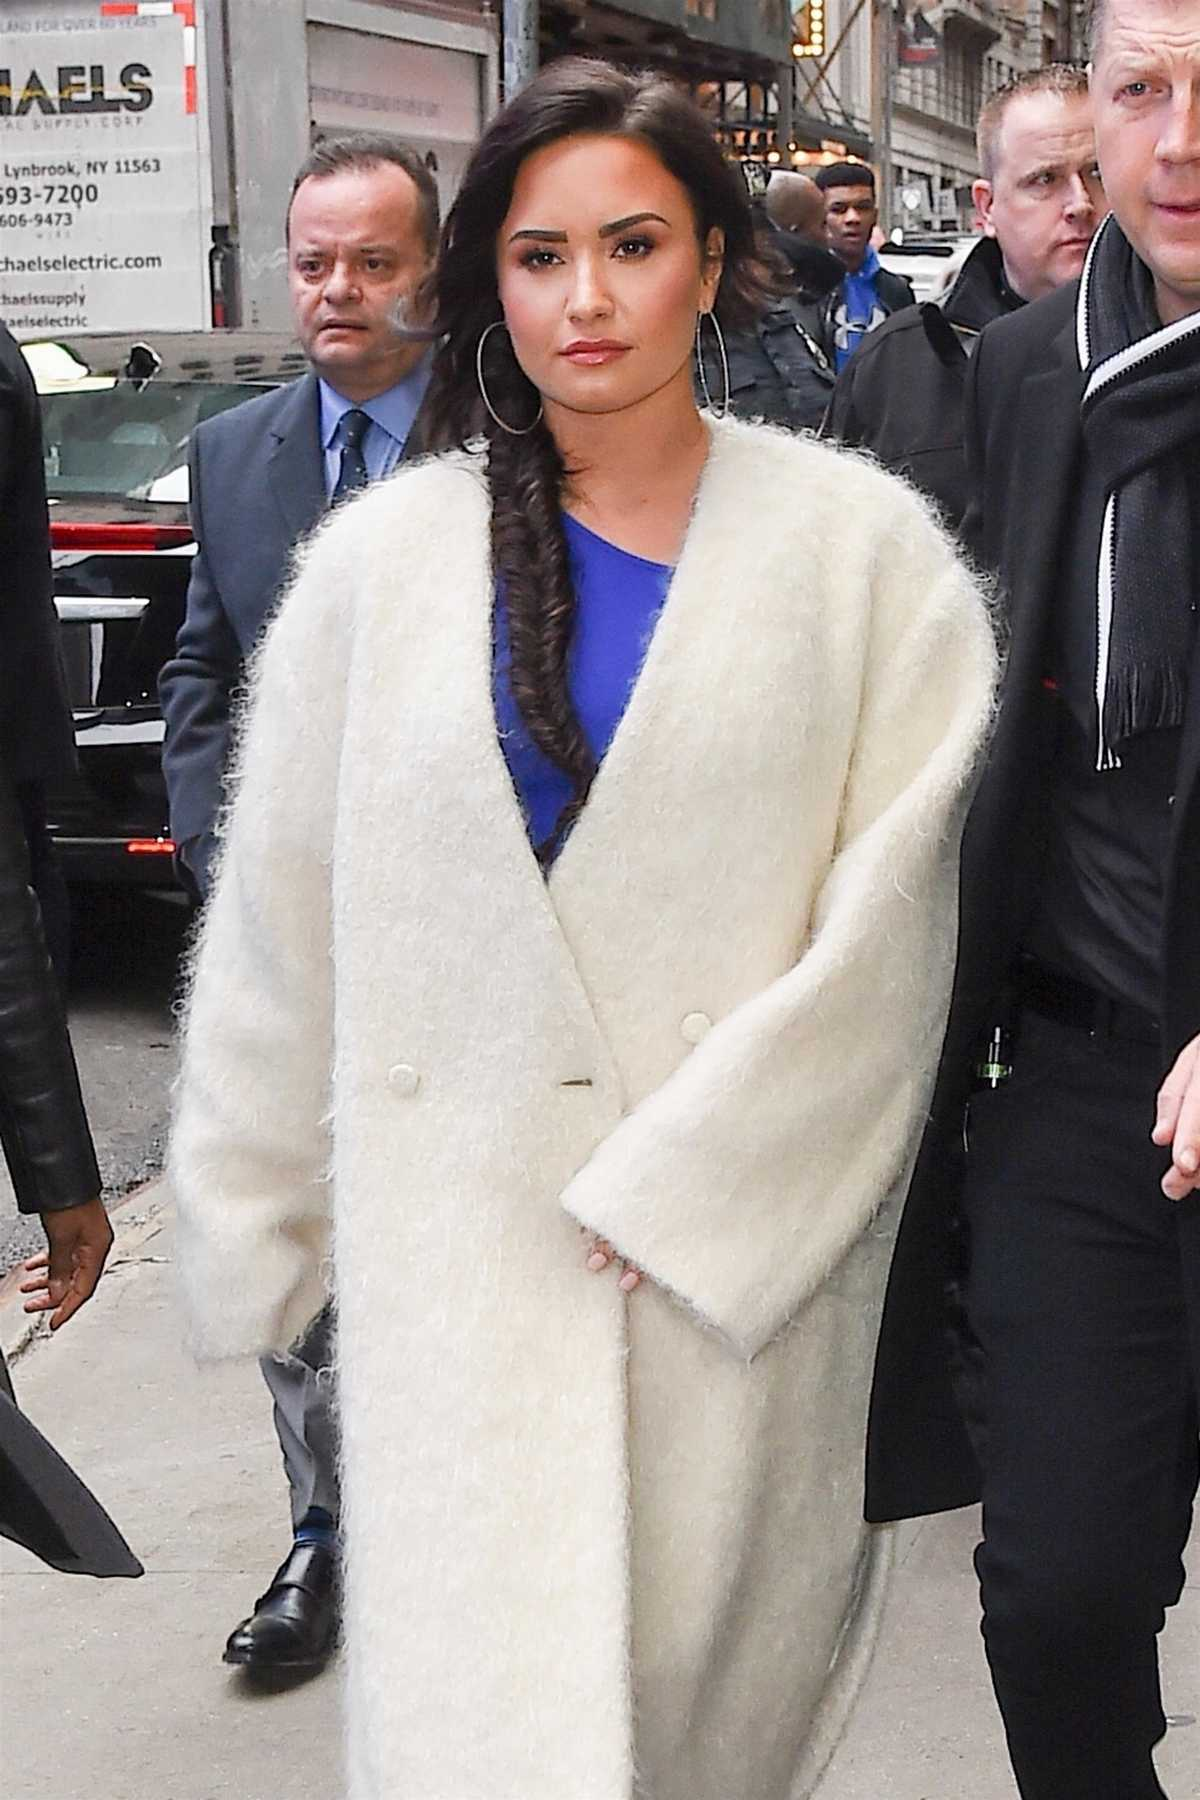 http://demigallery.com/albums/userpics/10001/Demi_Lovato_-_Arrives_to_Good_Morning_America_in_NYC_on_January_24-03.jpg